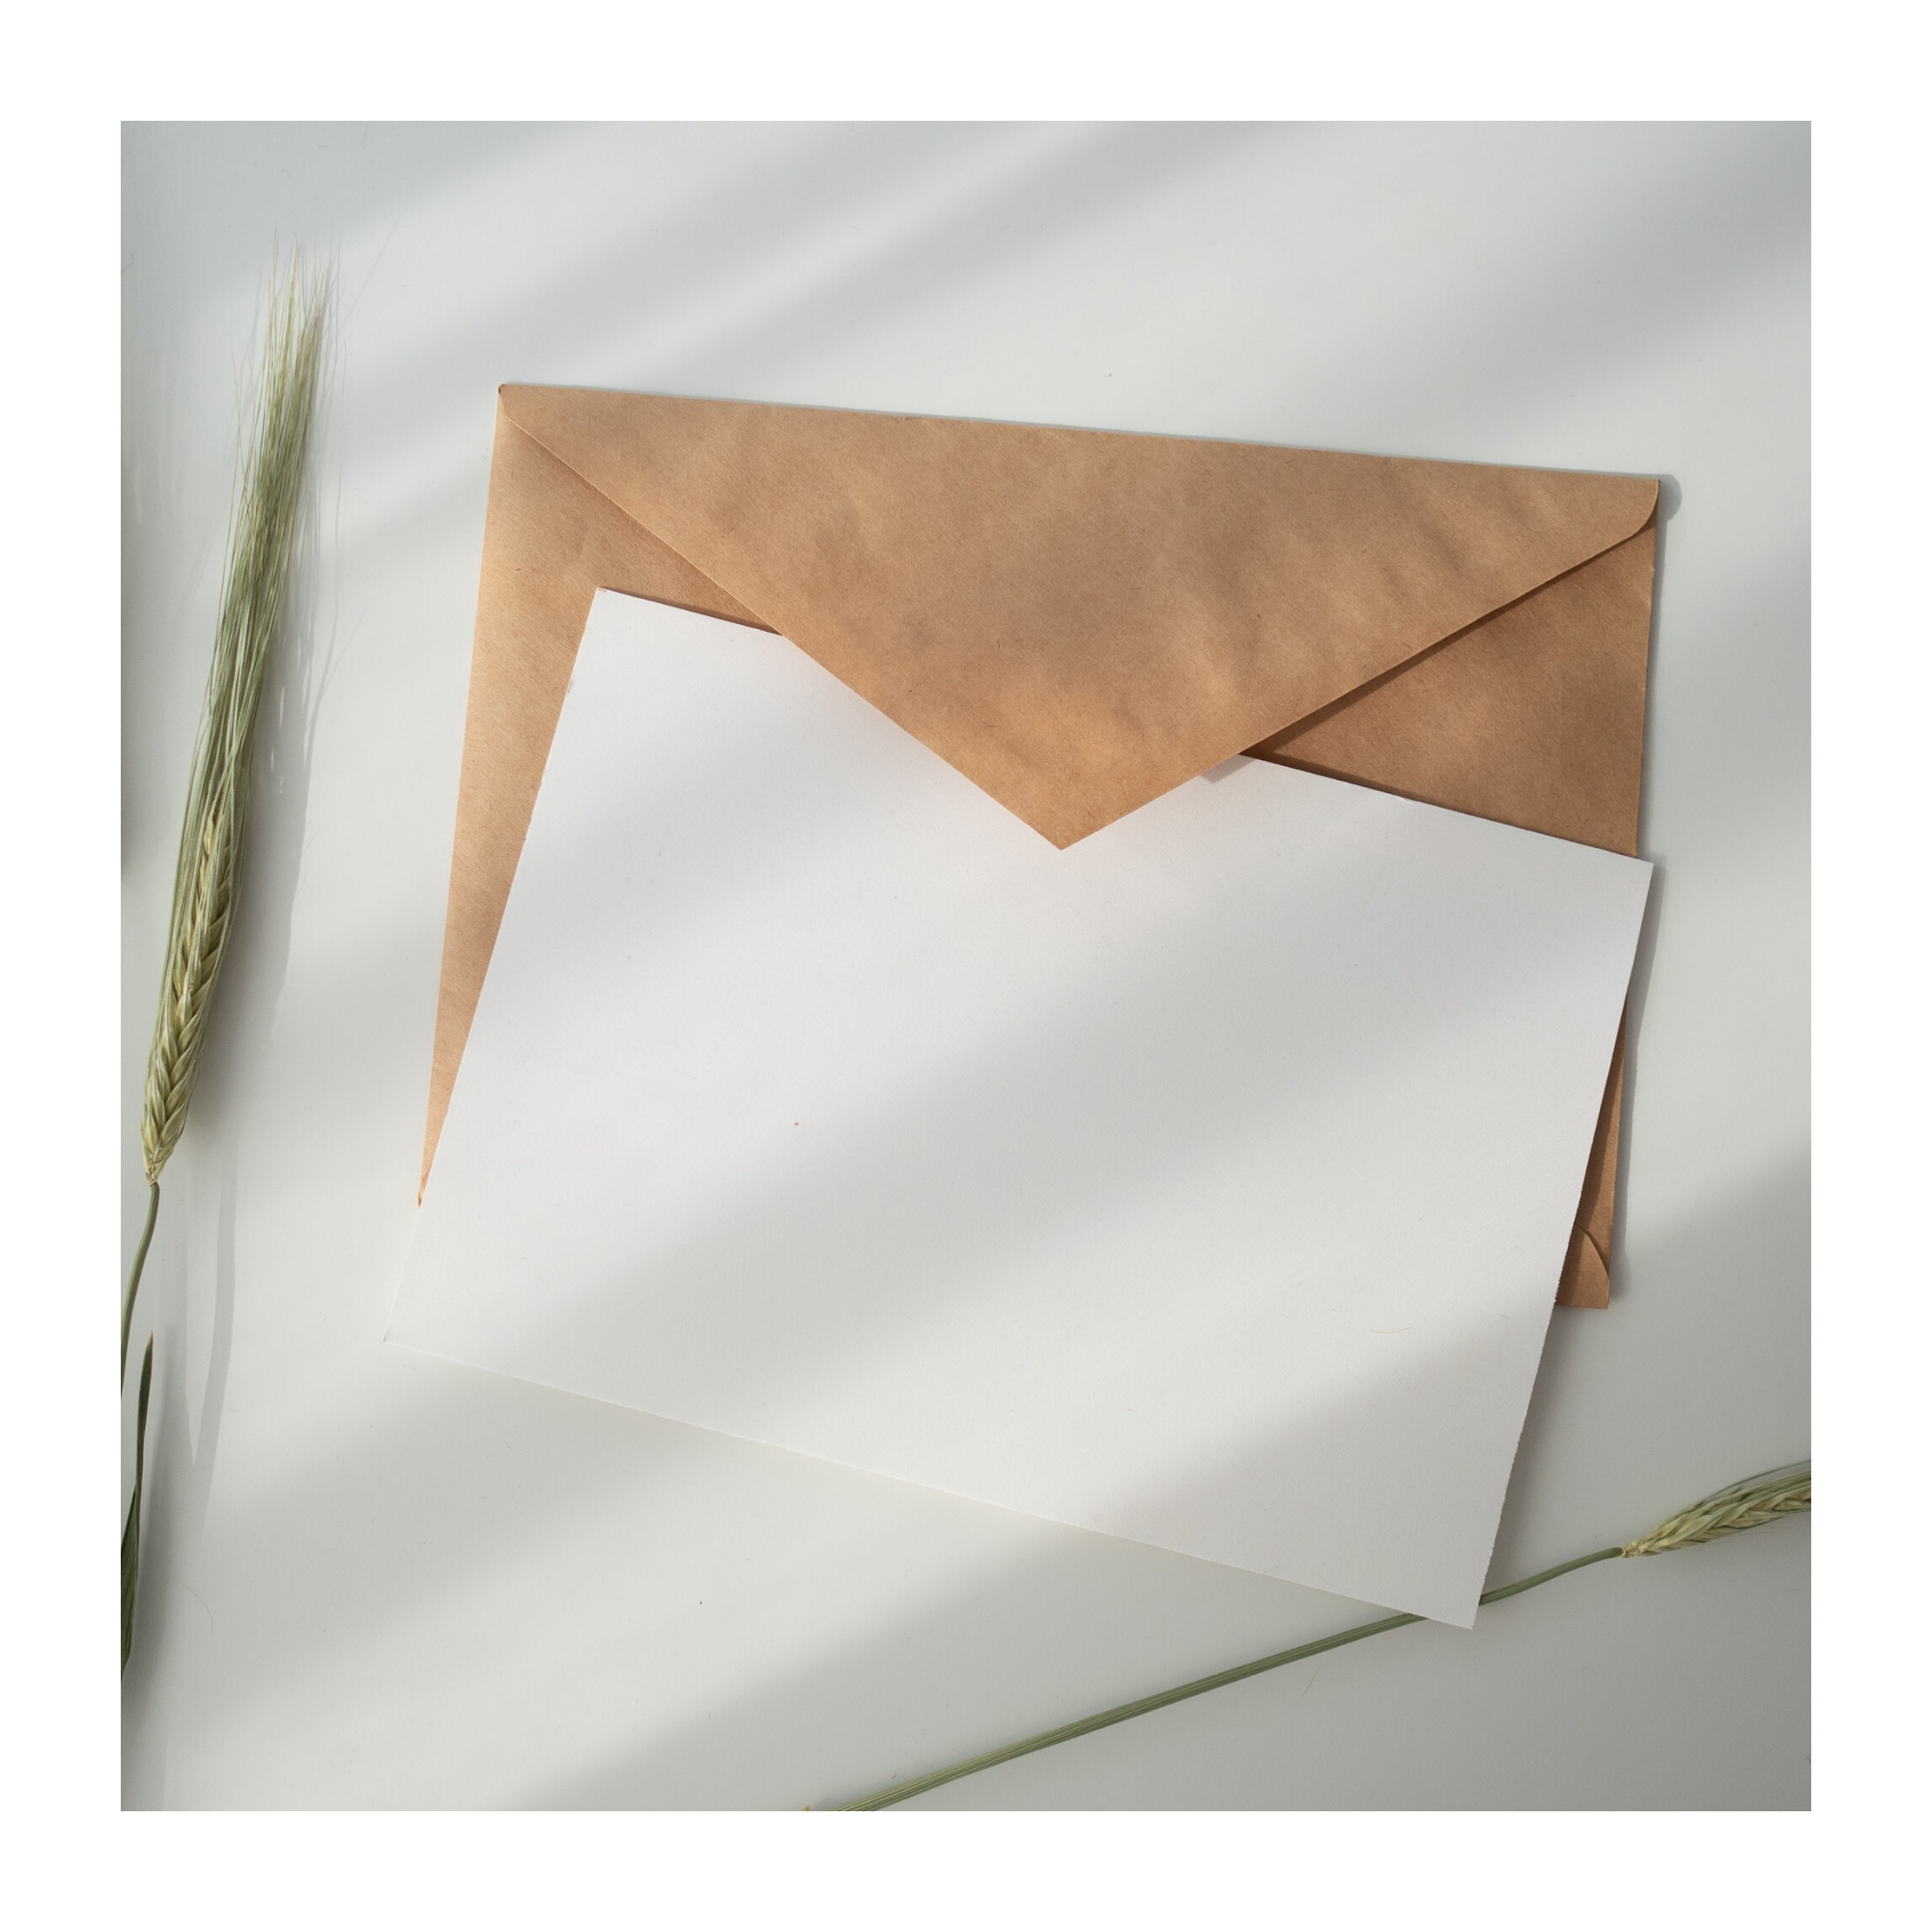 A white card and kraft brown envelope lain on a white surface.